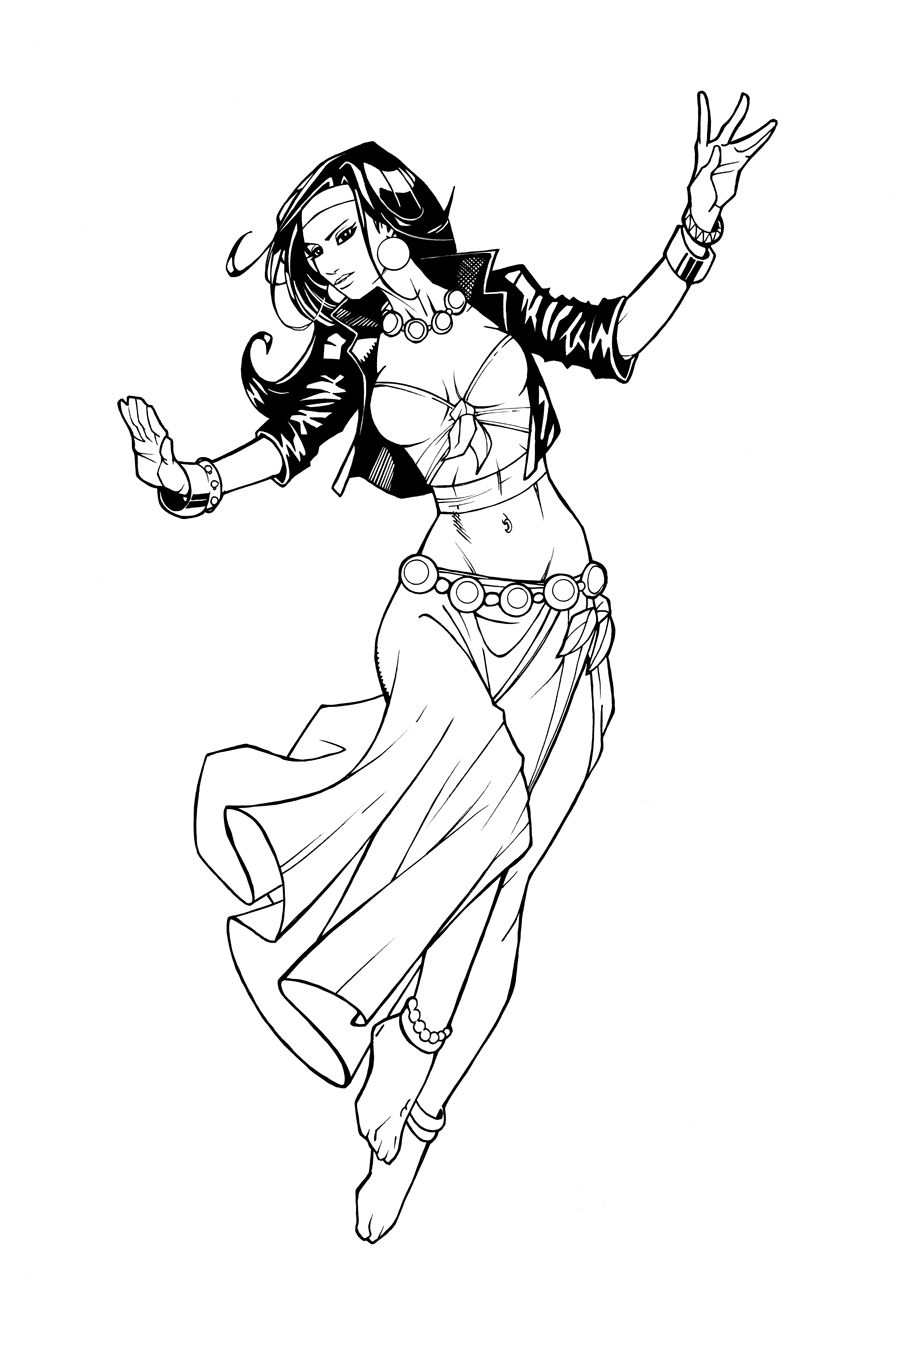 kathak dancer dances in india pinterest dancers sketches